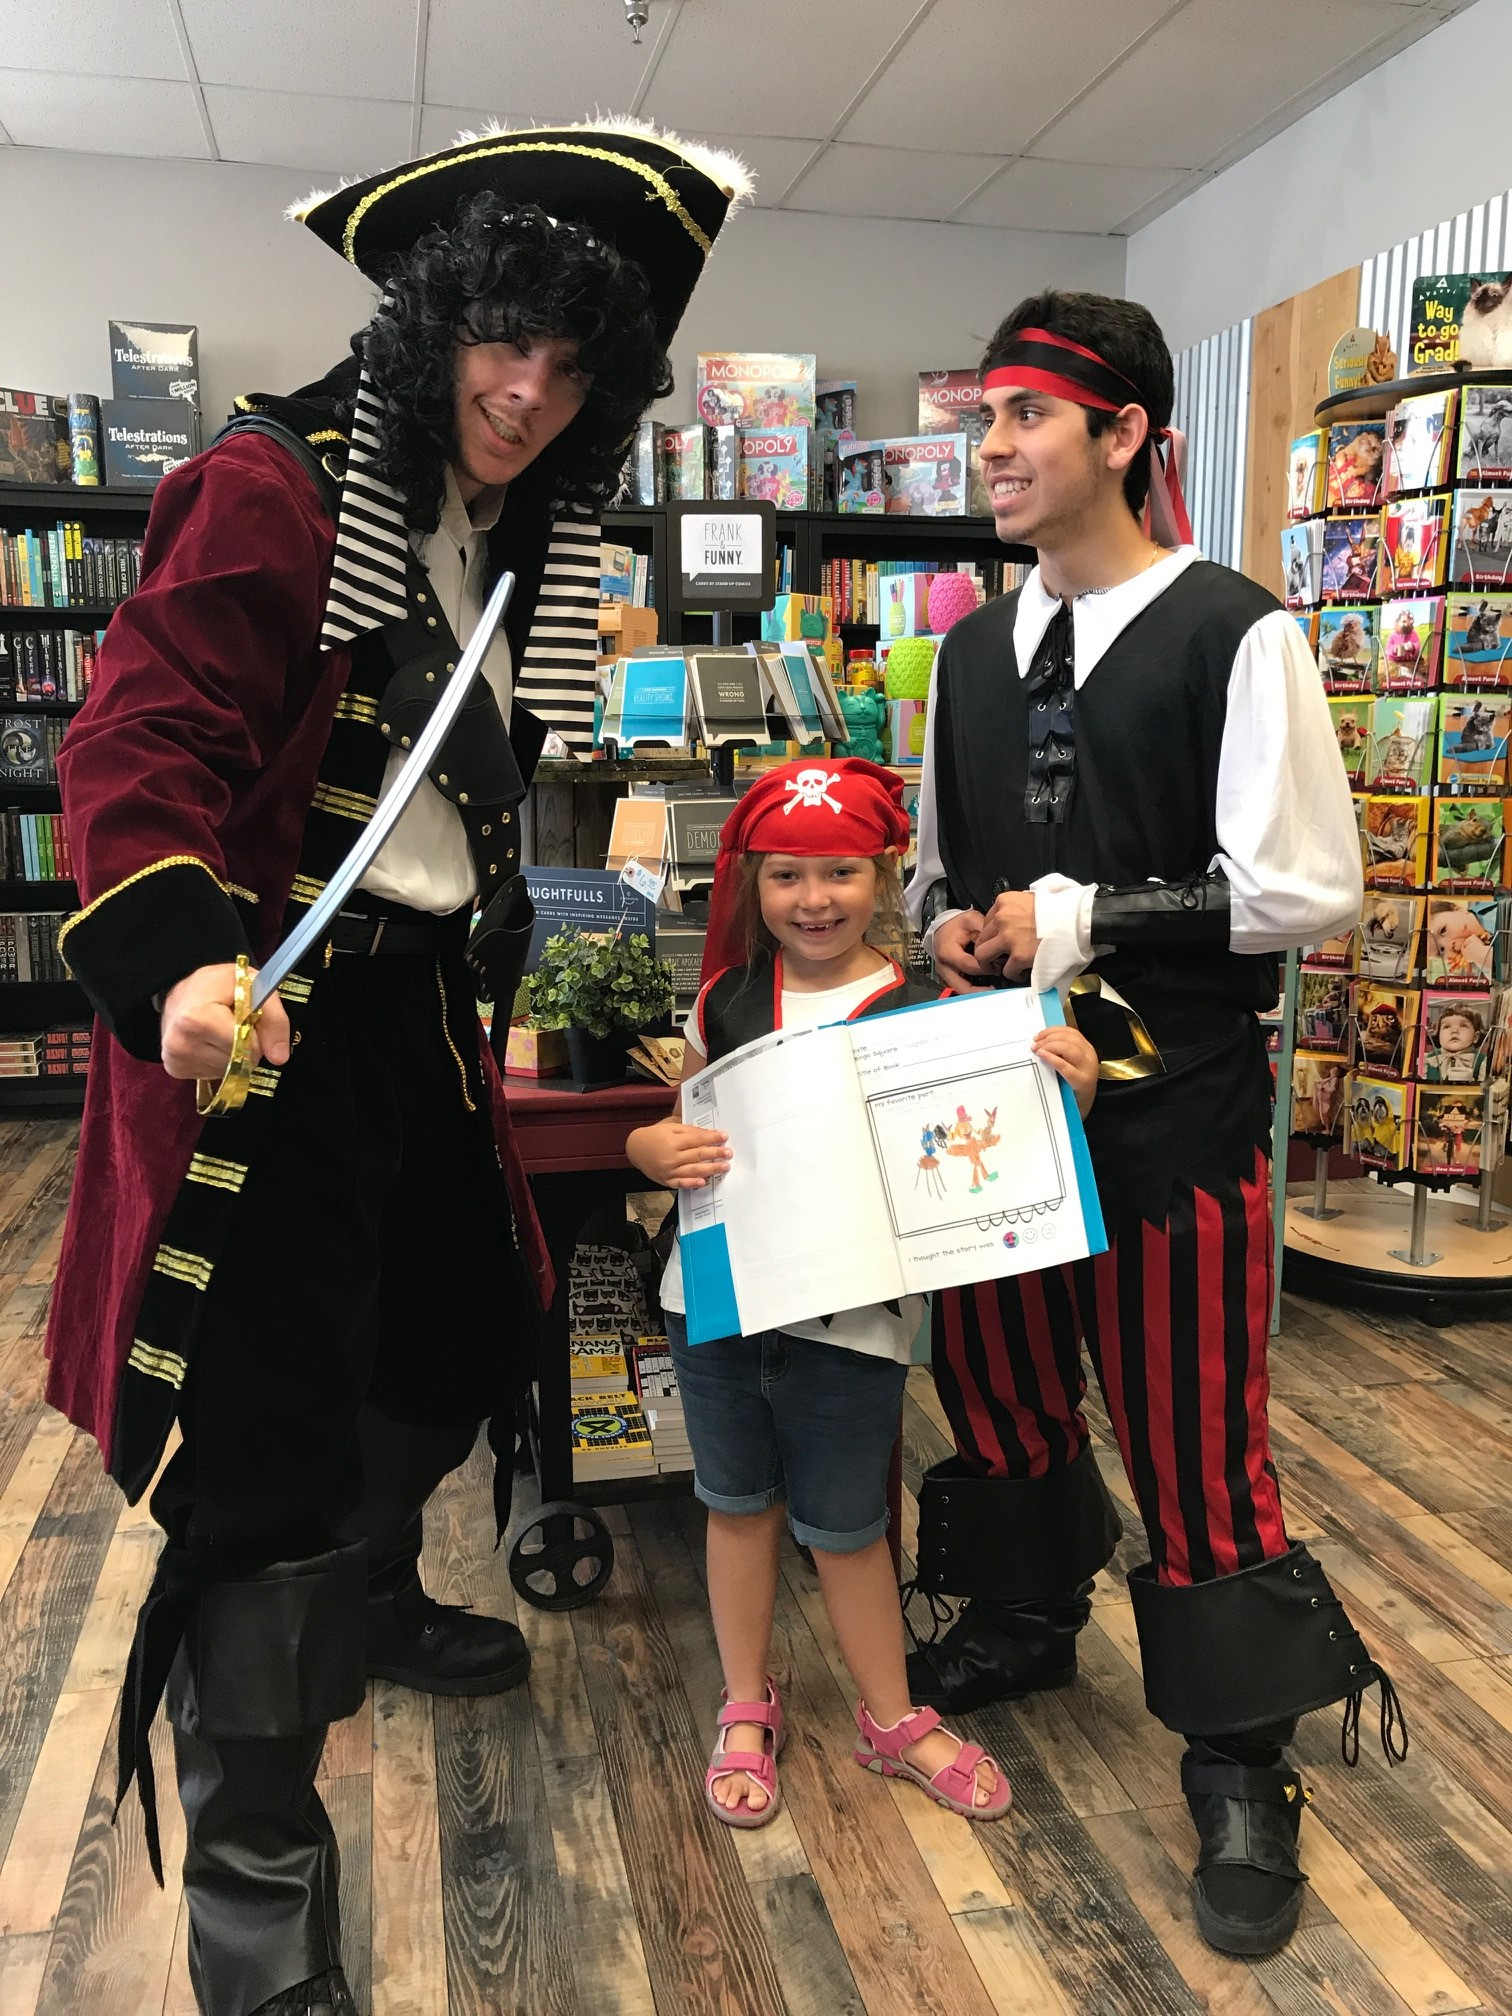 More pirate fun at Branches